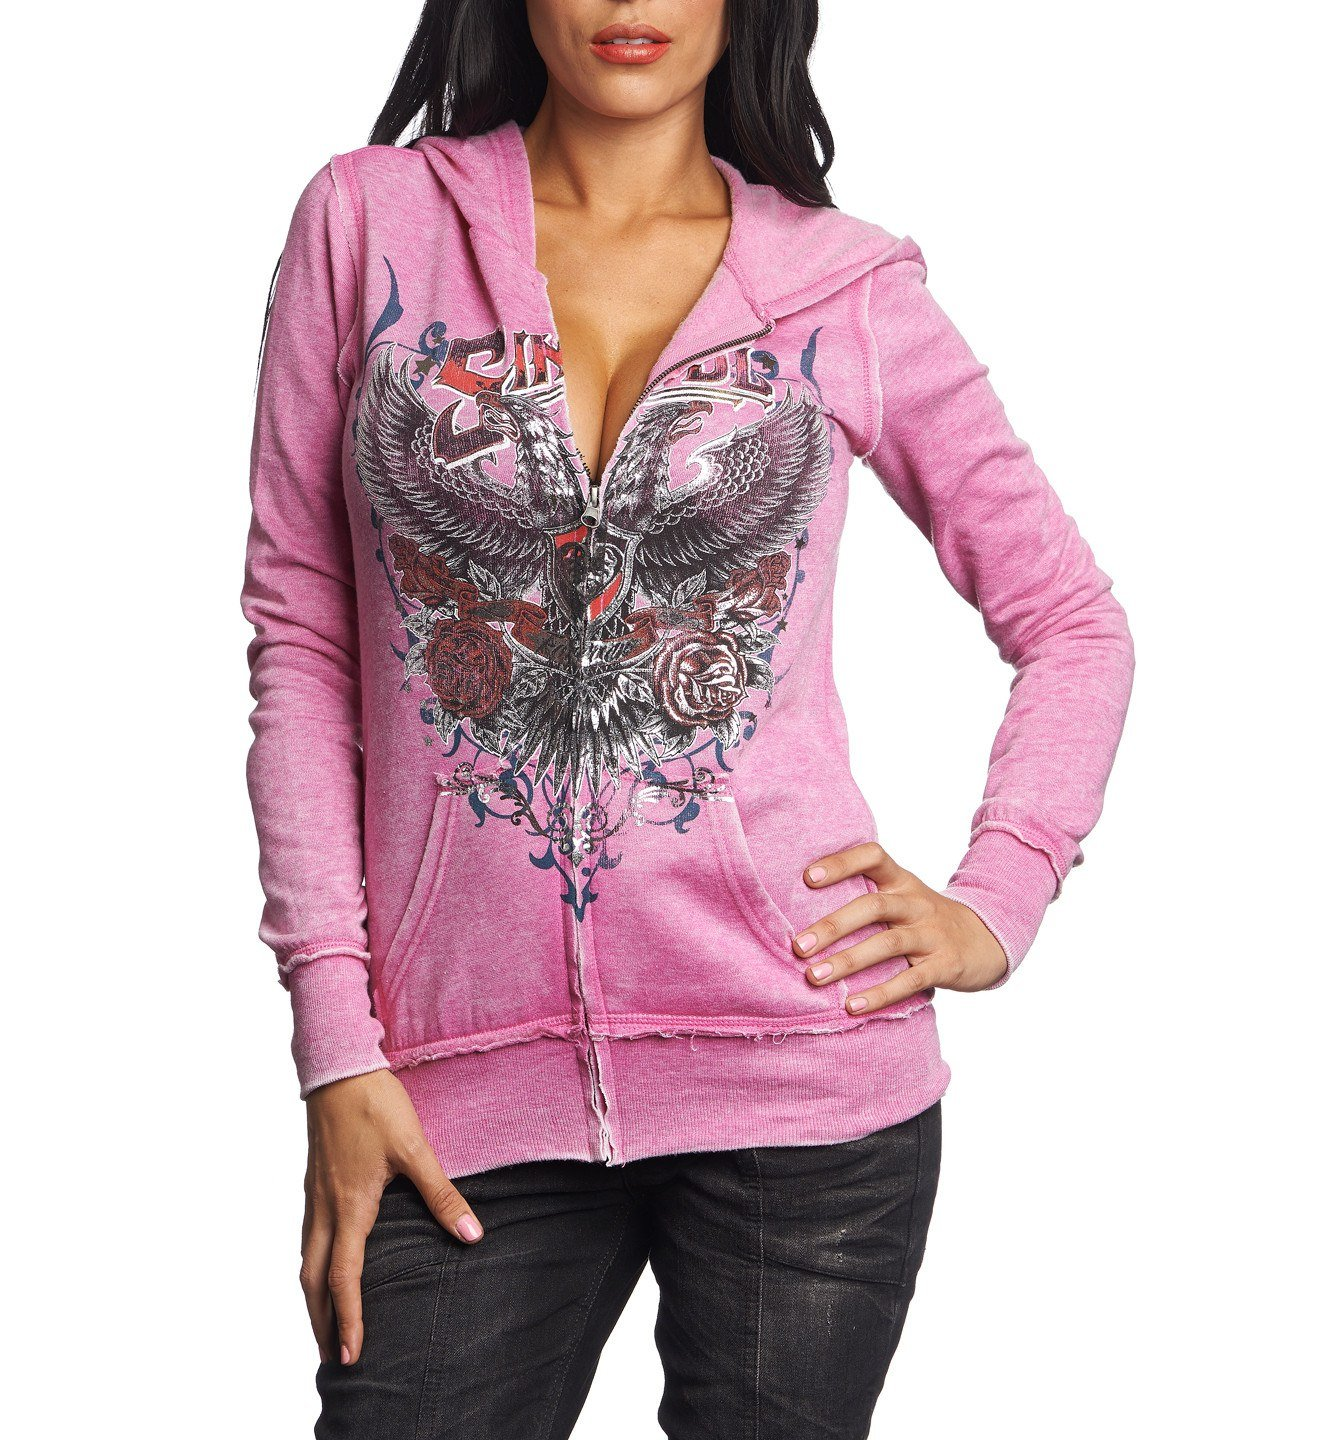 In Memory - Womens Hooded Sweatshirts - Affliction Clothing